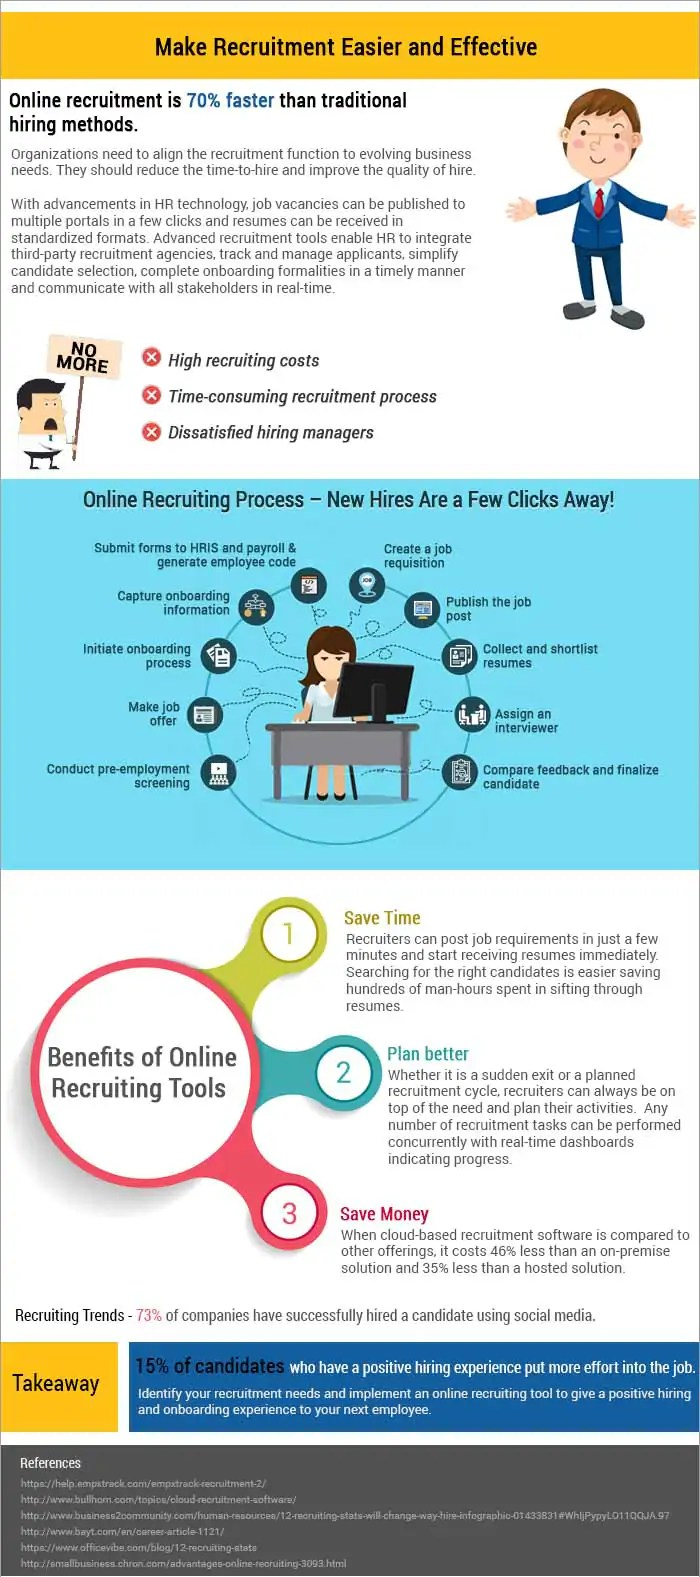 Online Recruitment Hr Trends: Use An Online Recruitment Tool To Find Your